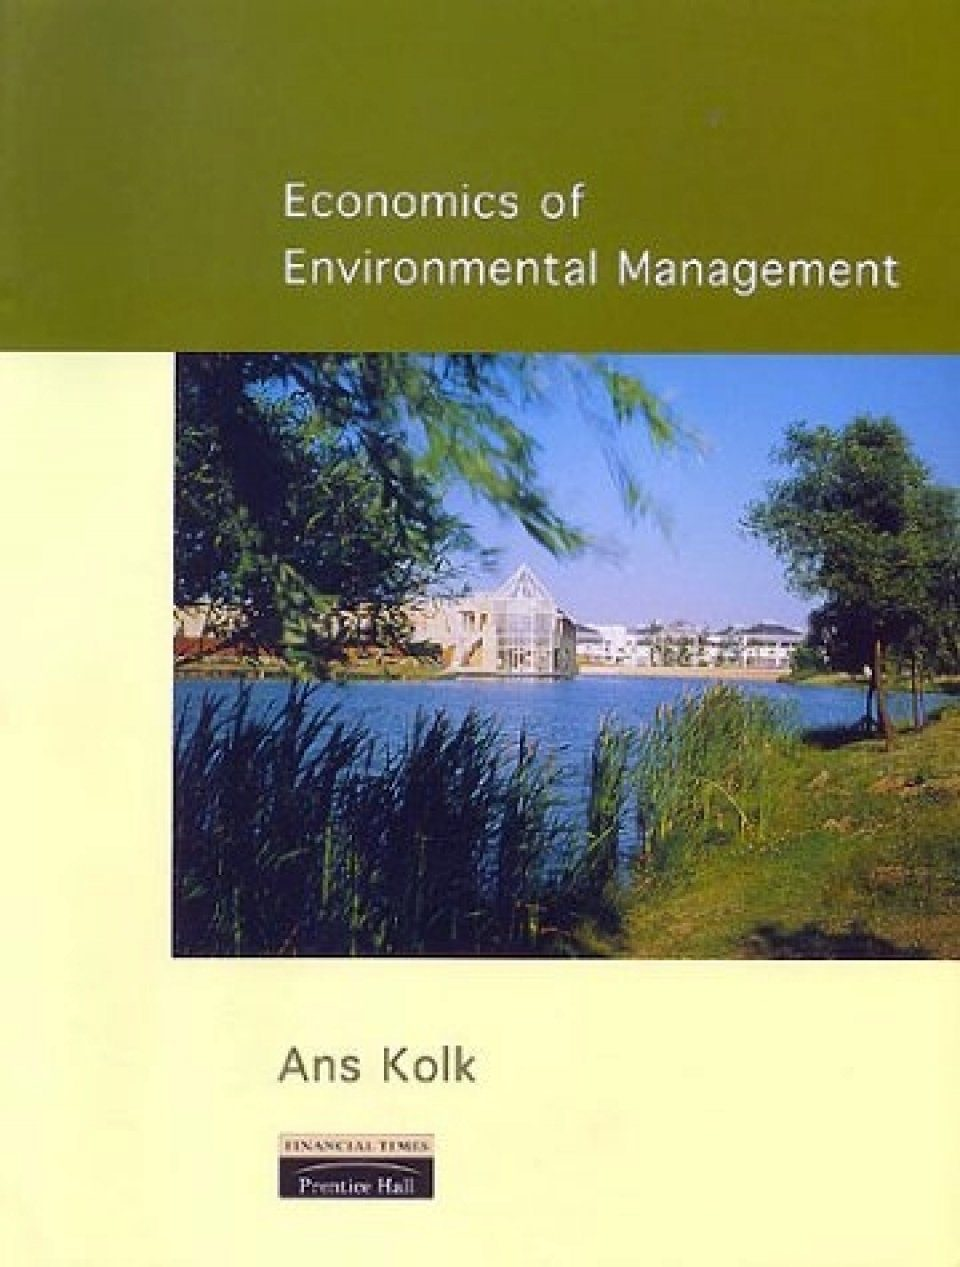 Economics of Environmental Management